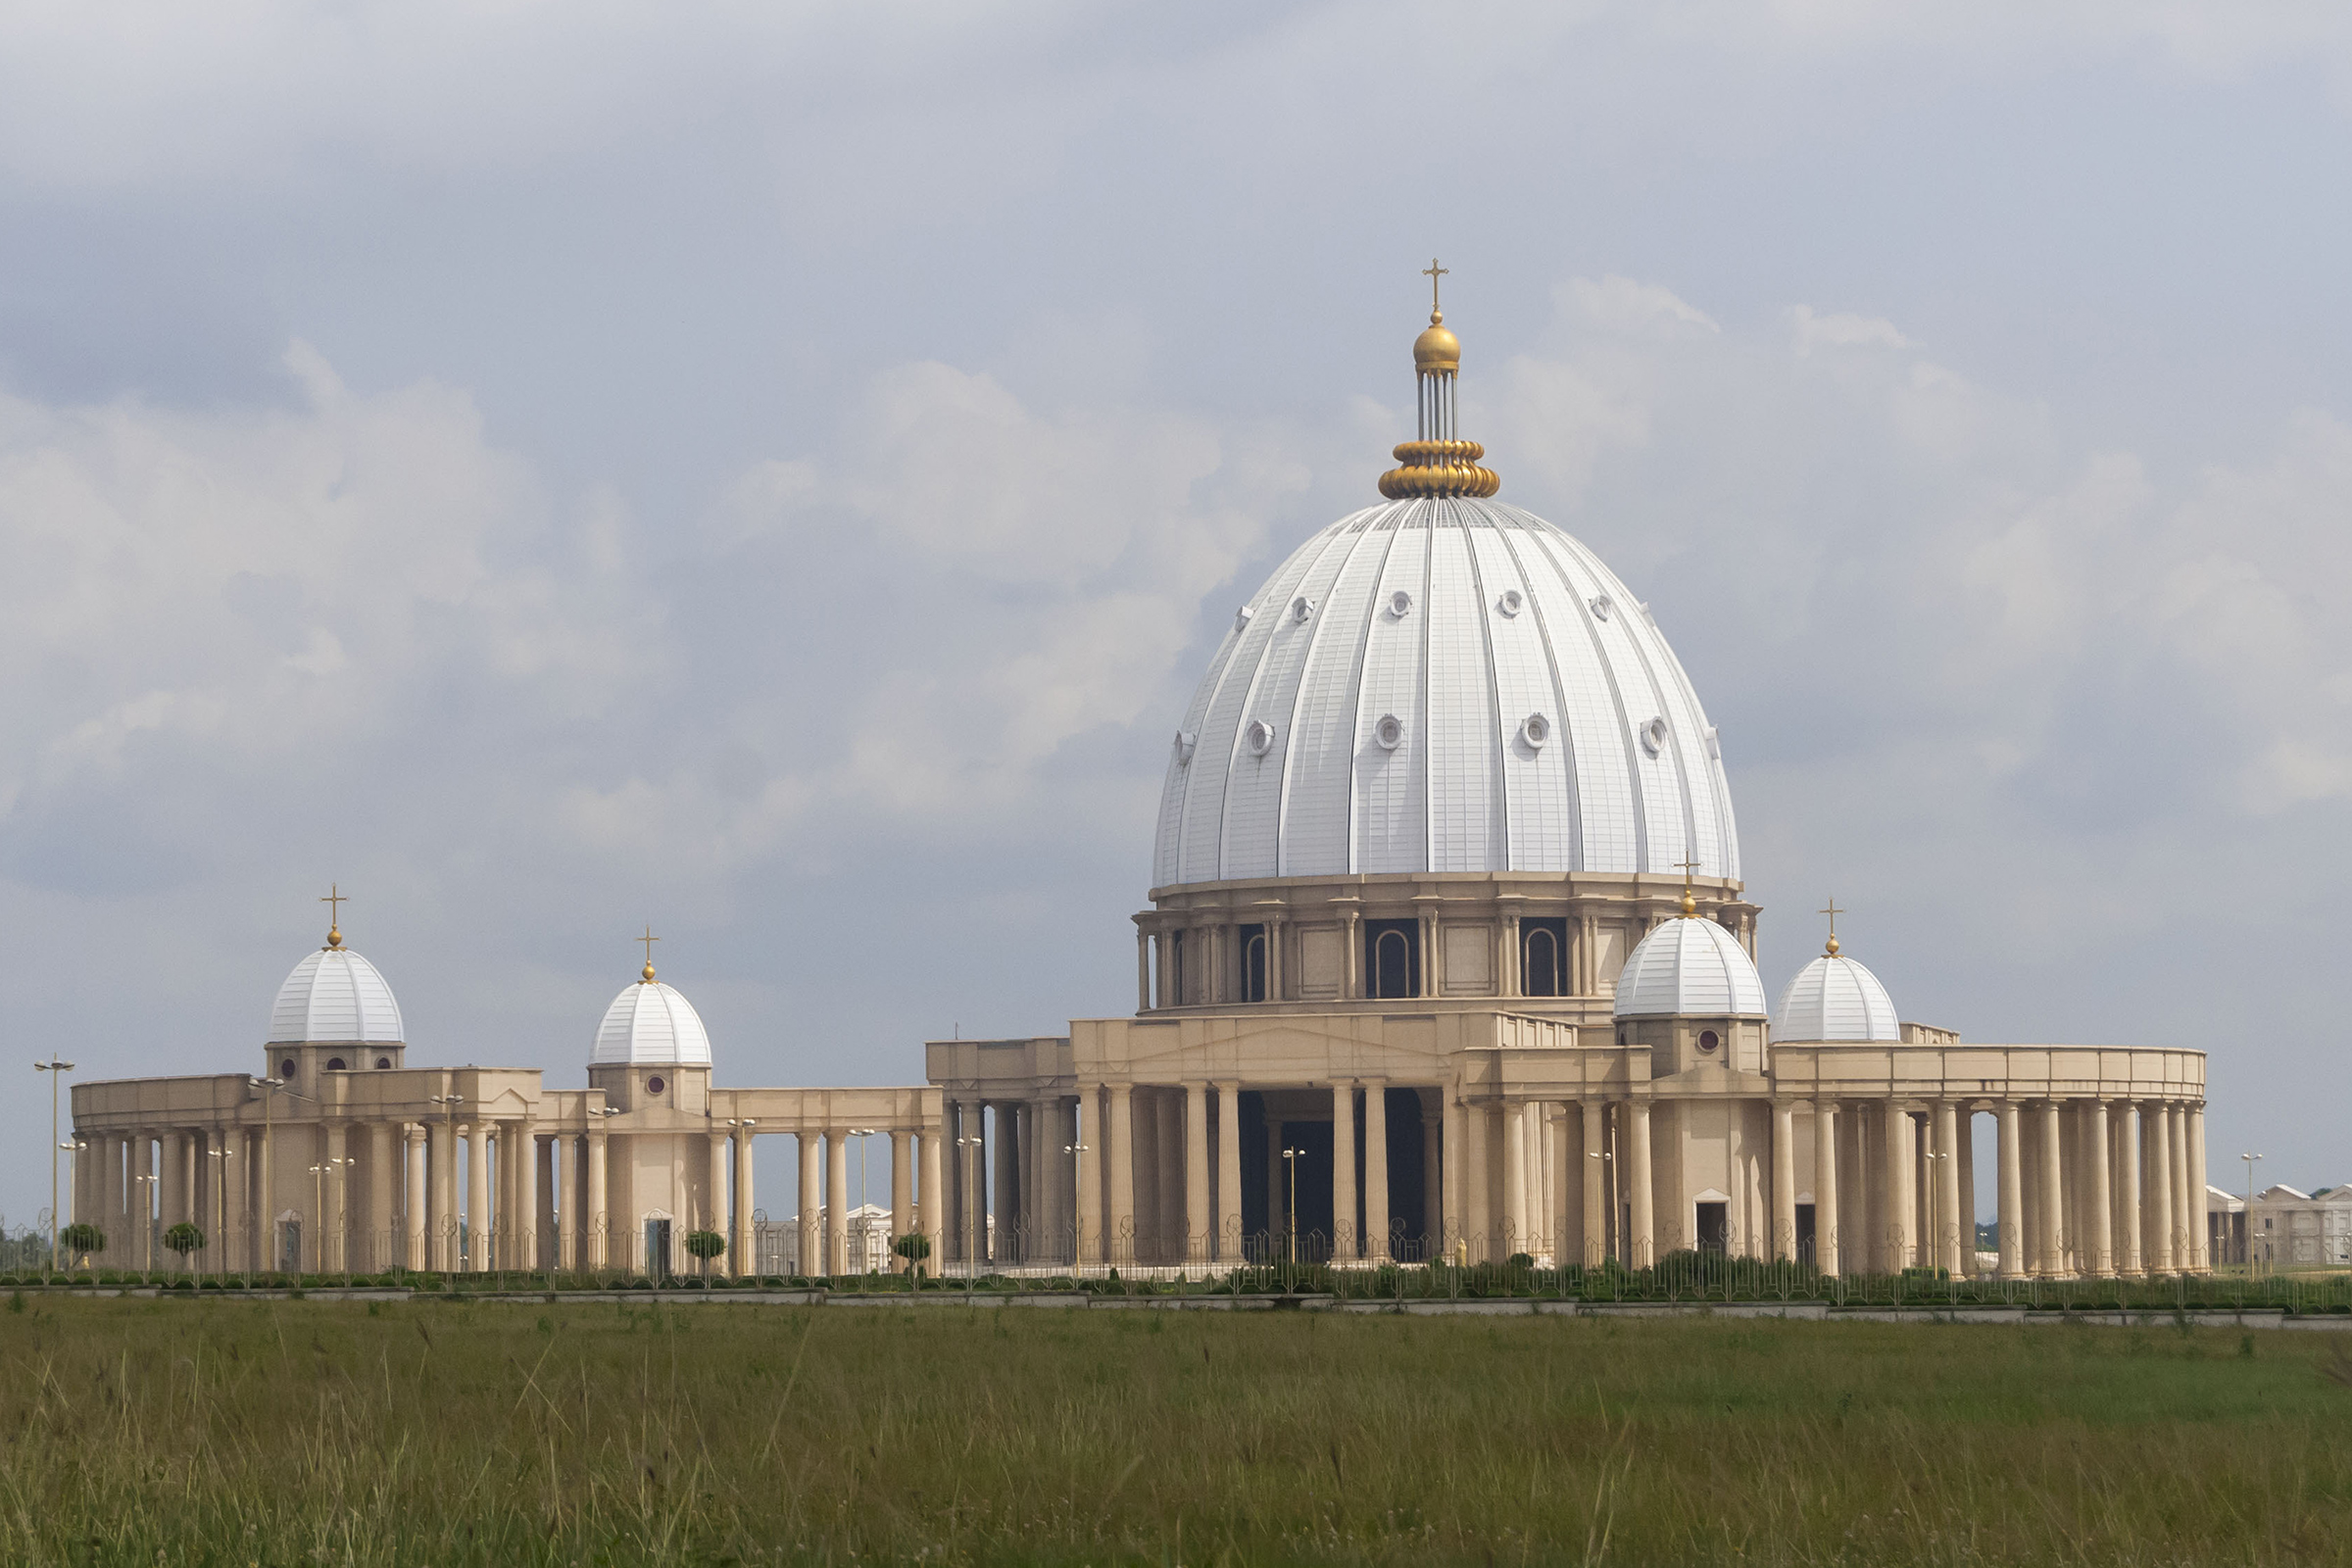 Ivory Coast Basilica of Our Lady of Peace